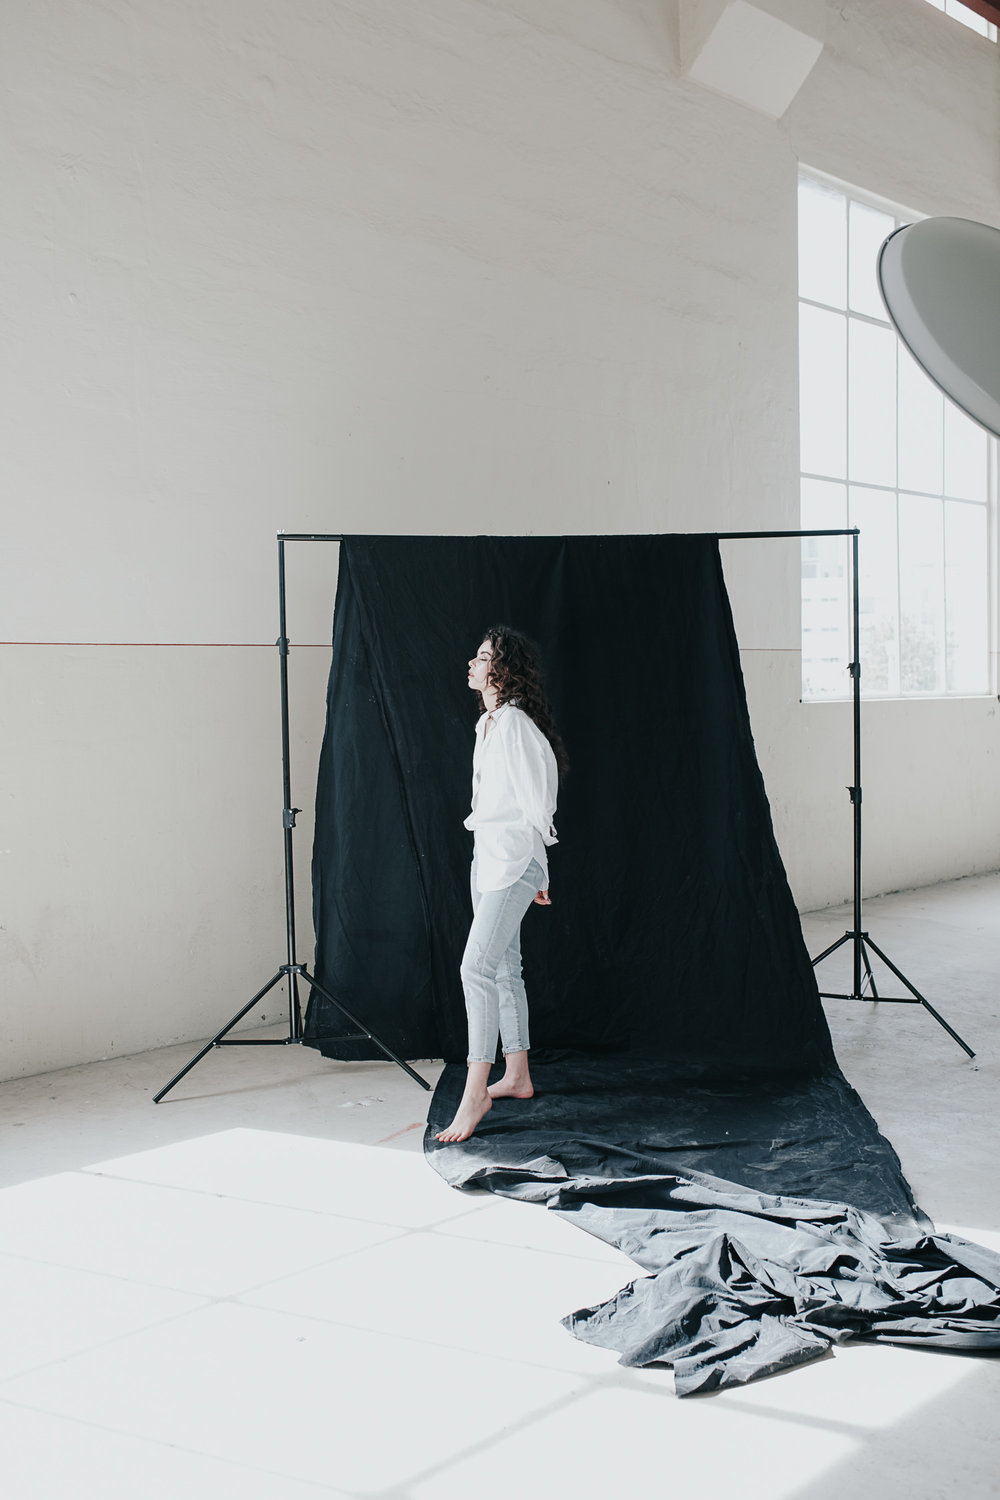 Natural light minimalist editorial portrait  - Fashion and commercial photographer Jenny Wu Straight No Chaser Photography